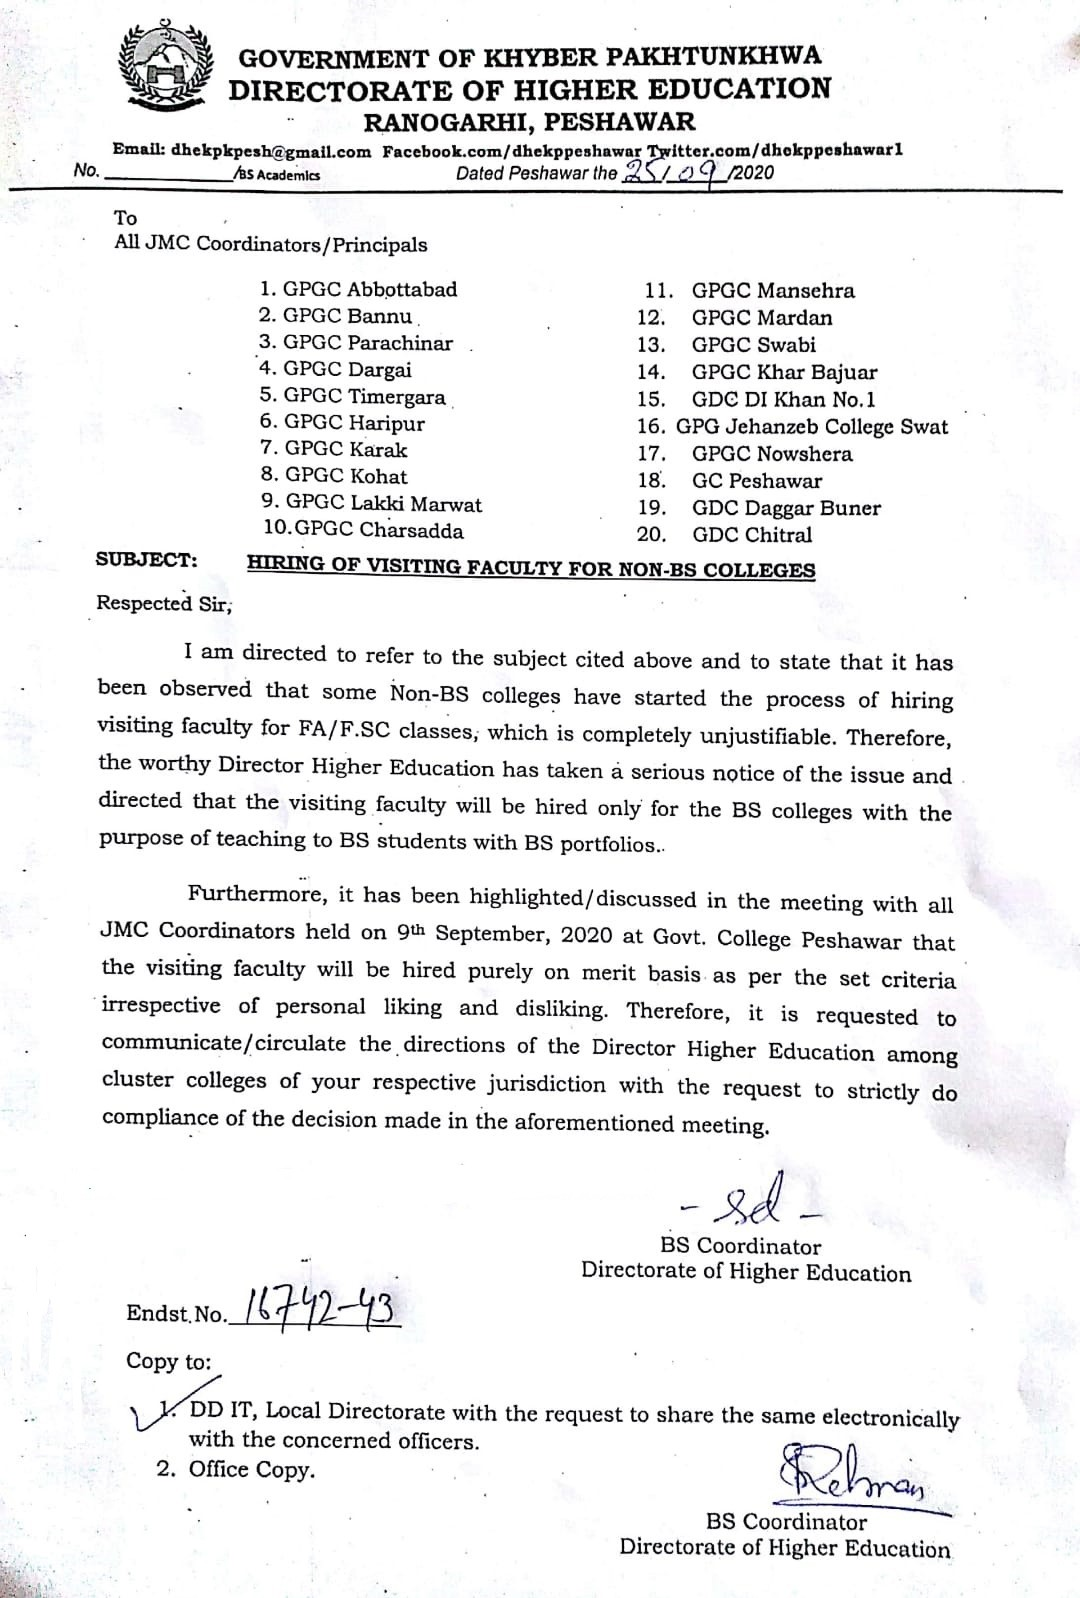 Hiring of Visiting Faculty for Non-BS Colleges KP